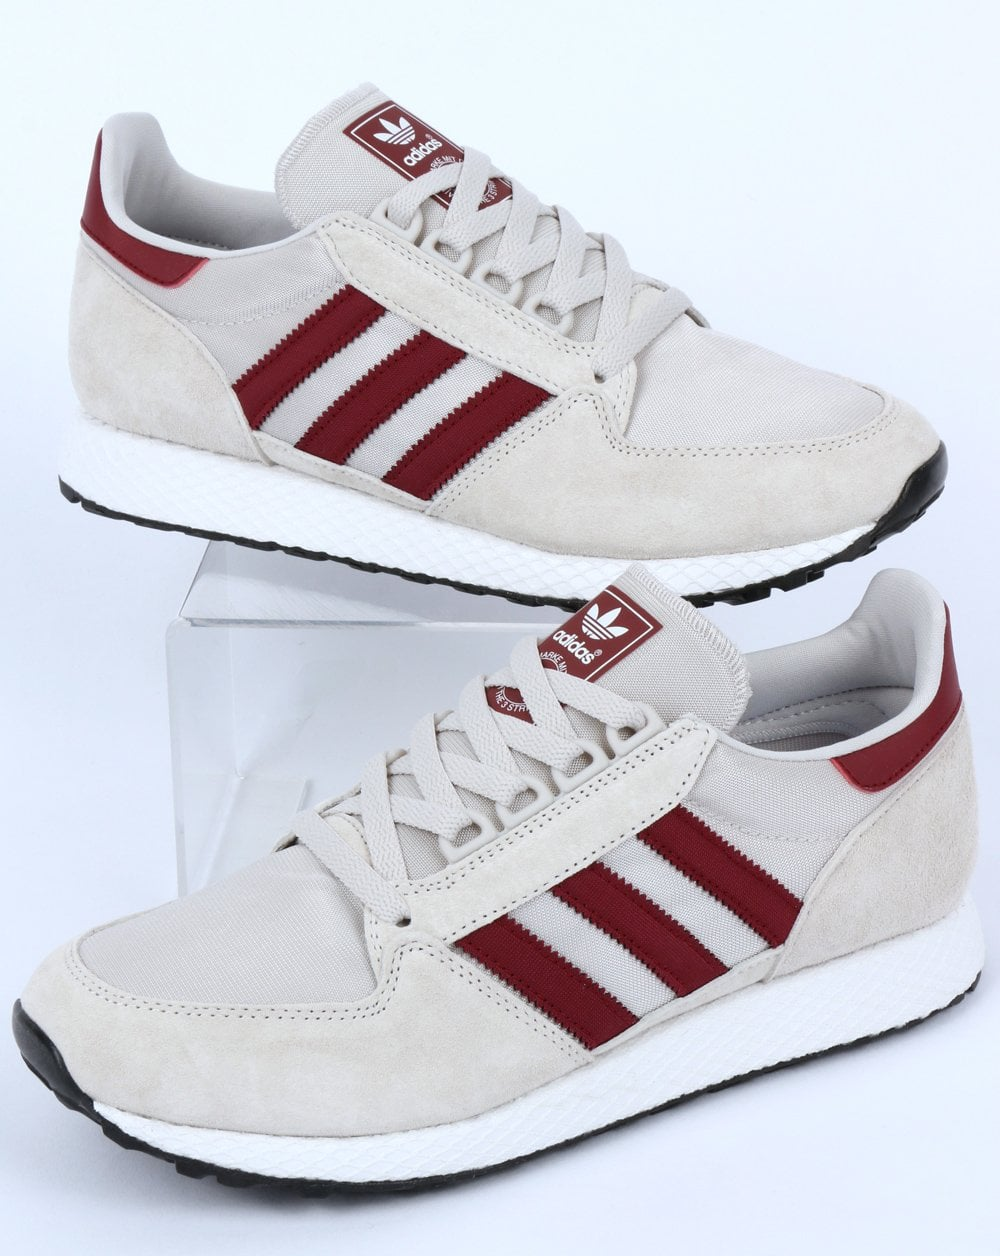 adidas Trainers Adidas Forest Grove Trainers Chalk White Burgundy 7f2360834